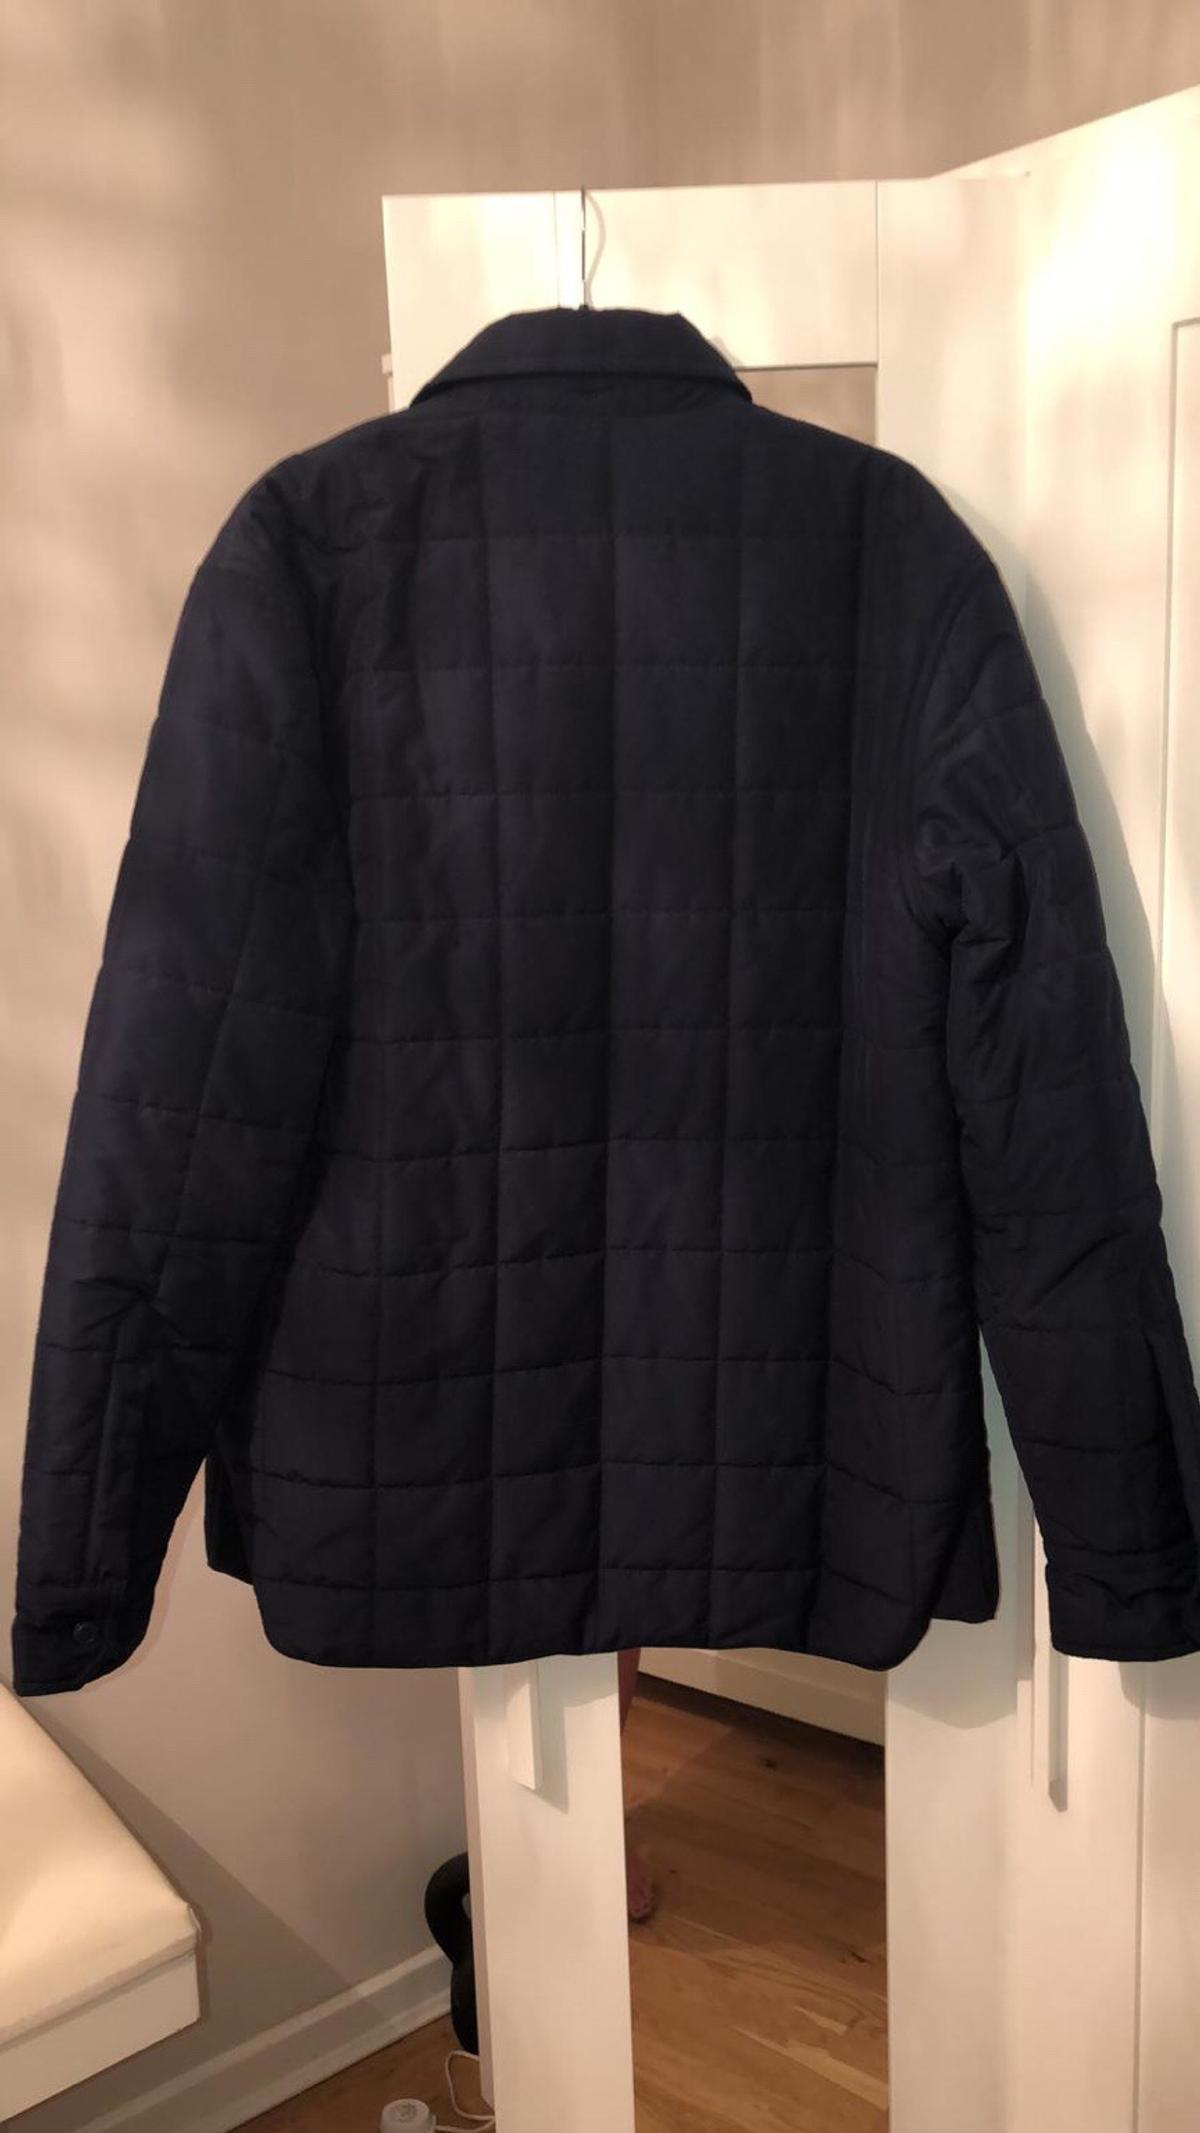 34d9dd1d4 Men s Lacoste quilted jacket in London for £60.00 for sale - Shpock